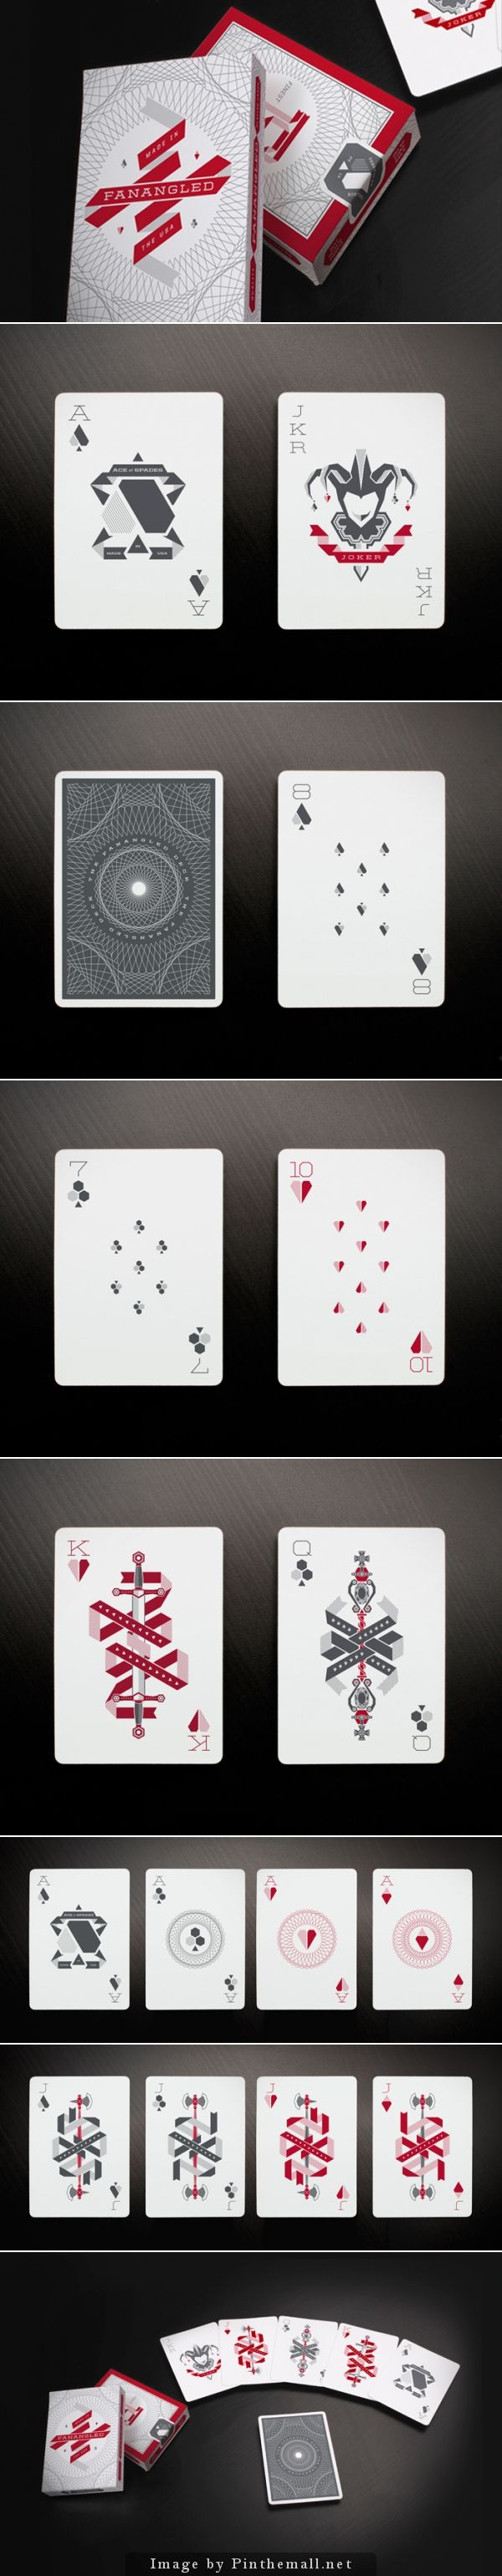 In each of these playing cards I appreciated the small details. Each one of them tied in well with the other cards in the series and challenged our perceptions of what a card should look like.